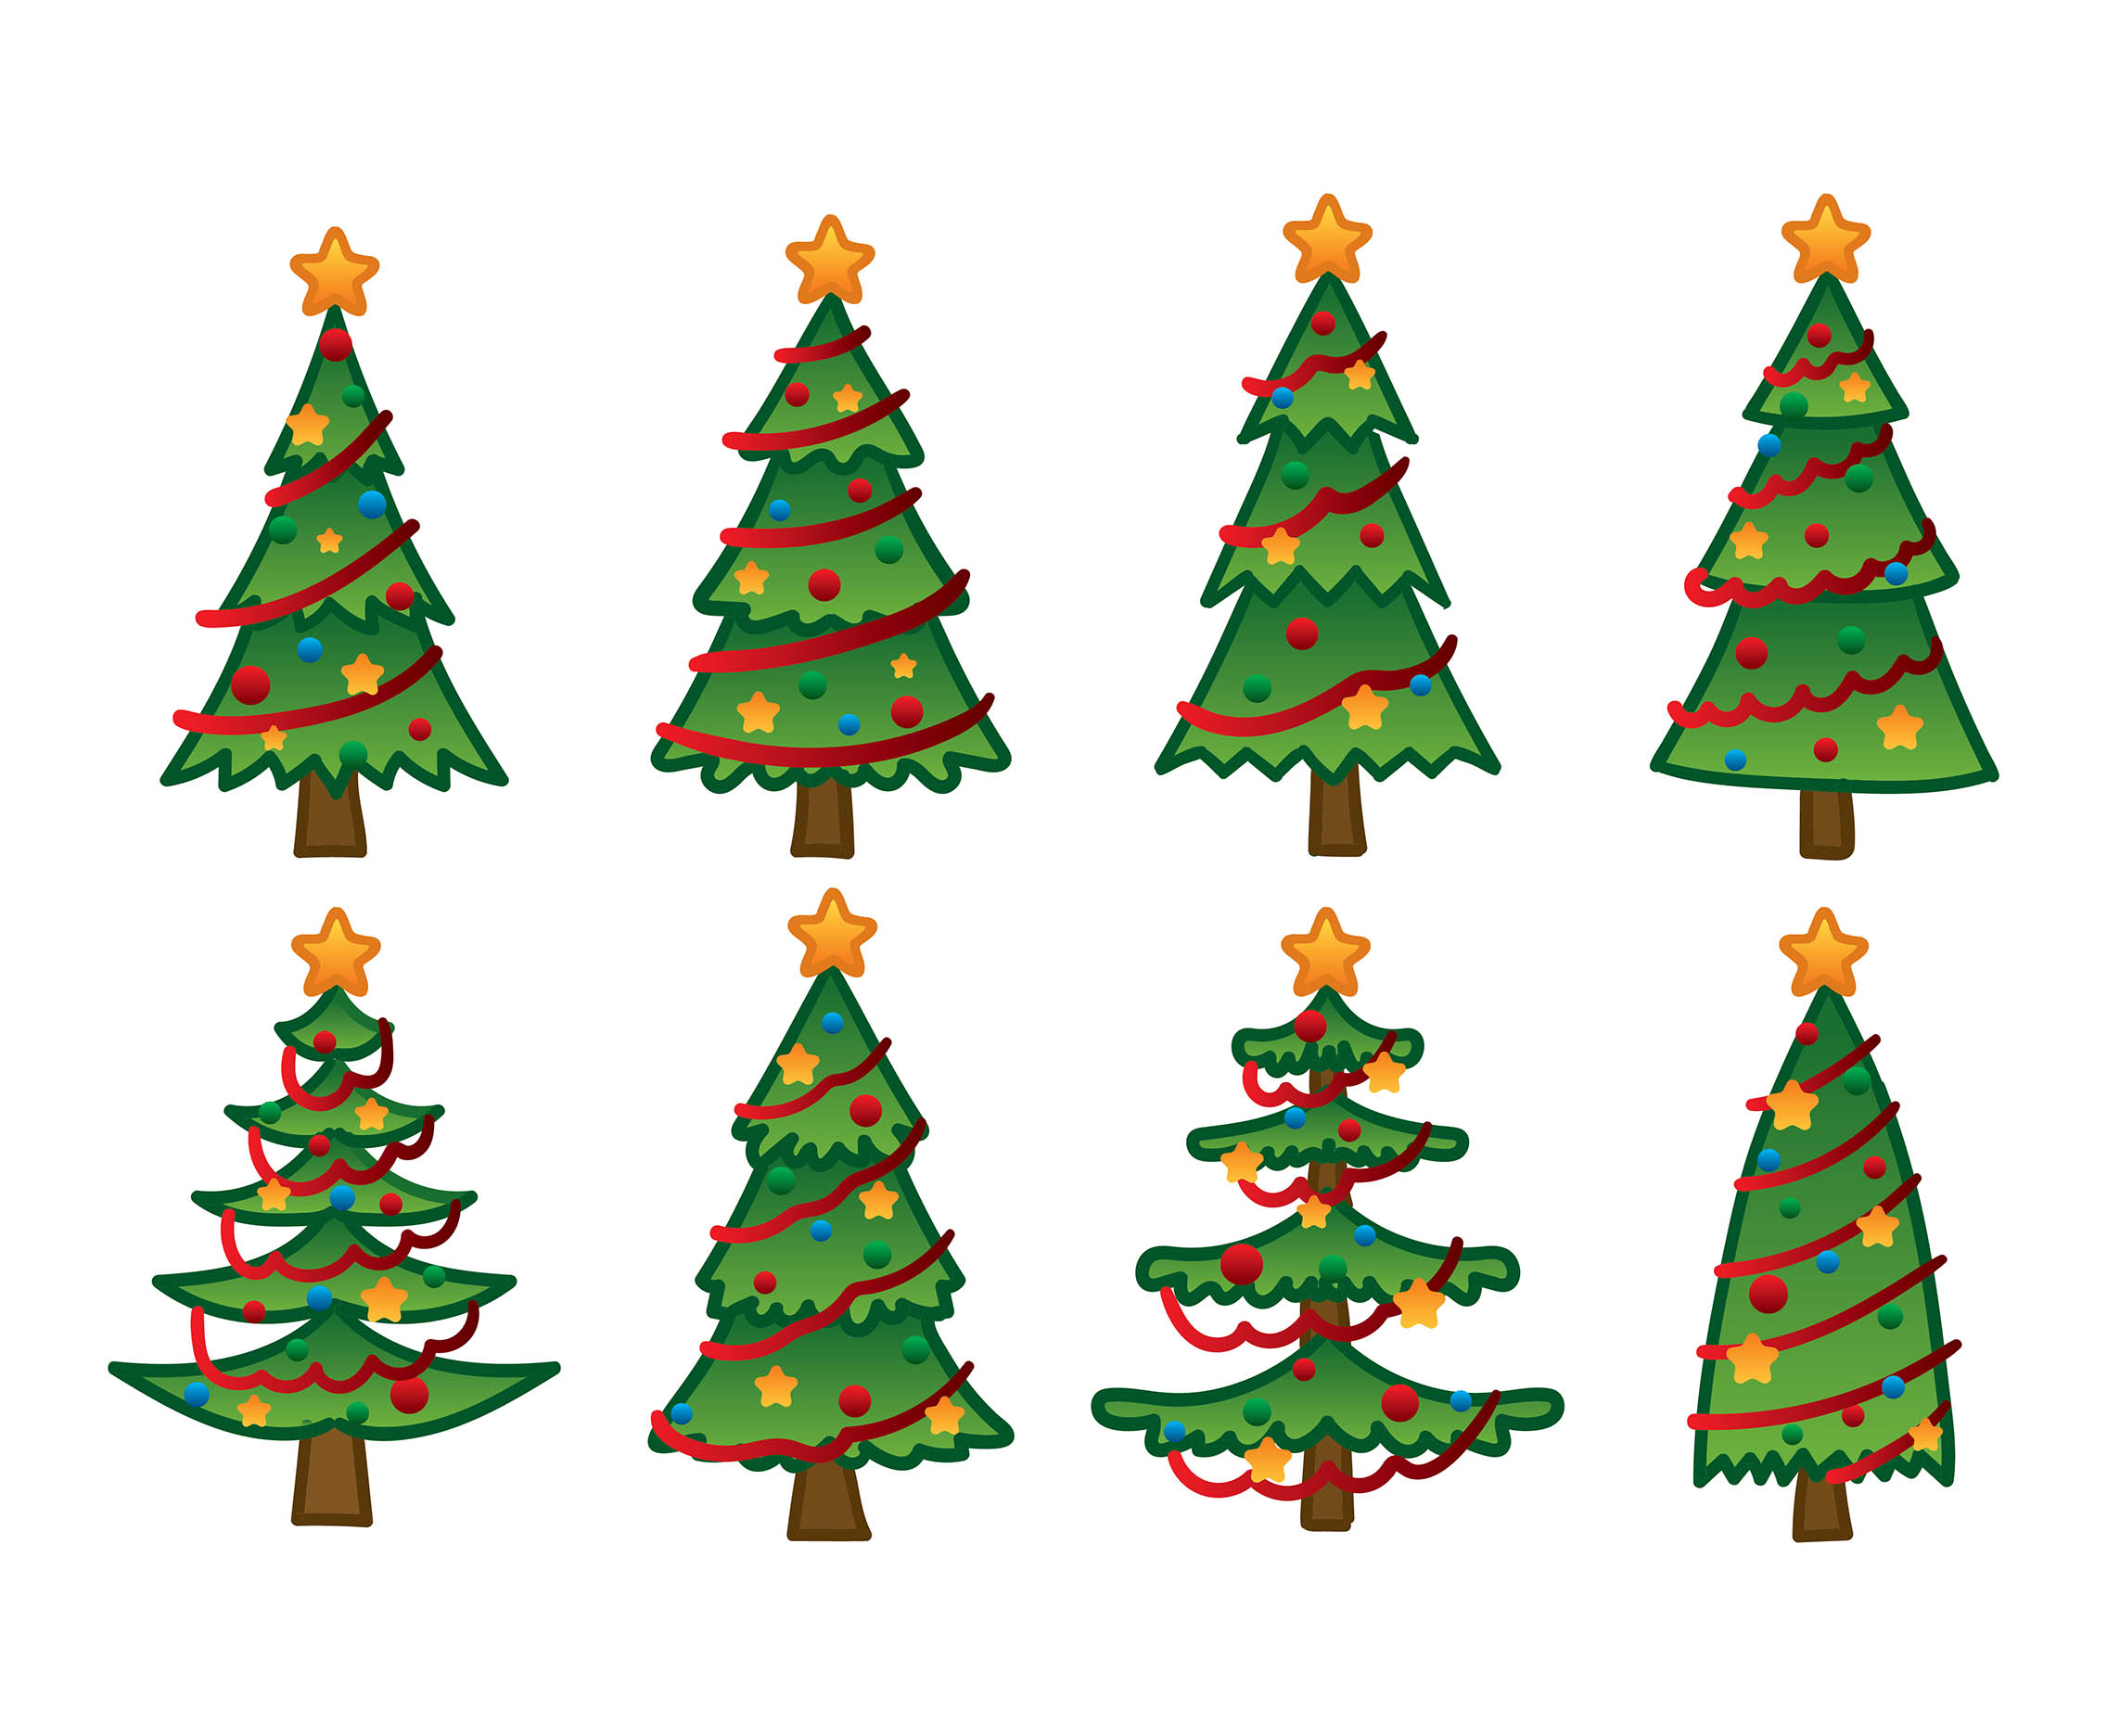 cartoon christmas tree hand drawing download free vectors clipart graphics vector art https www vecteezy com vector art 174561 cartoon christmas tree hand drawing